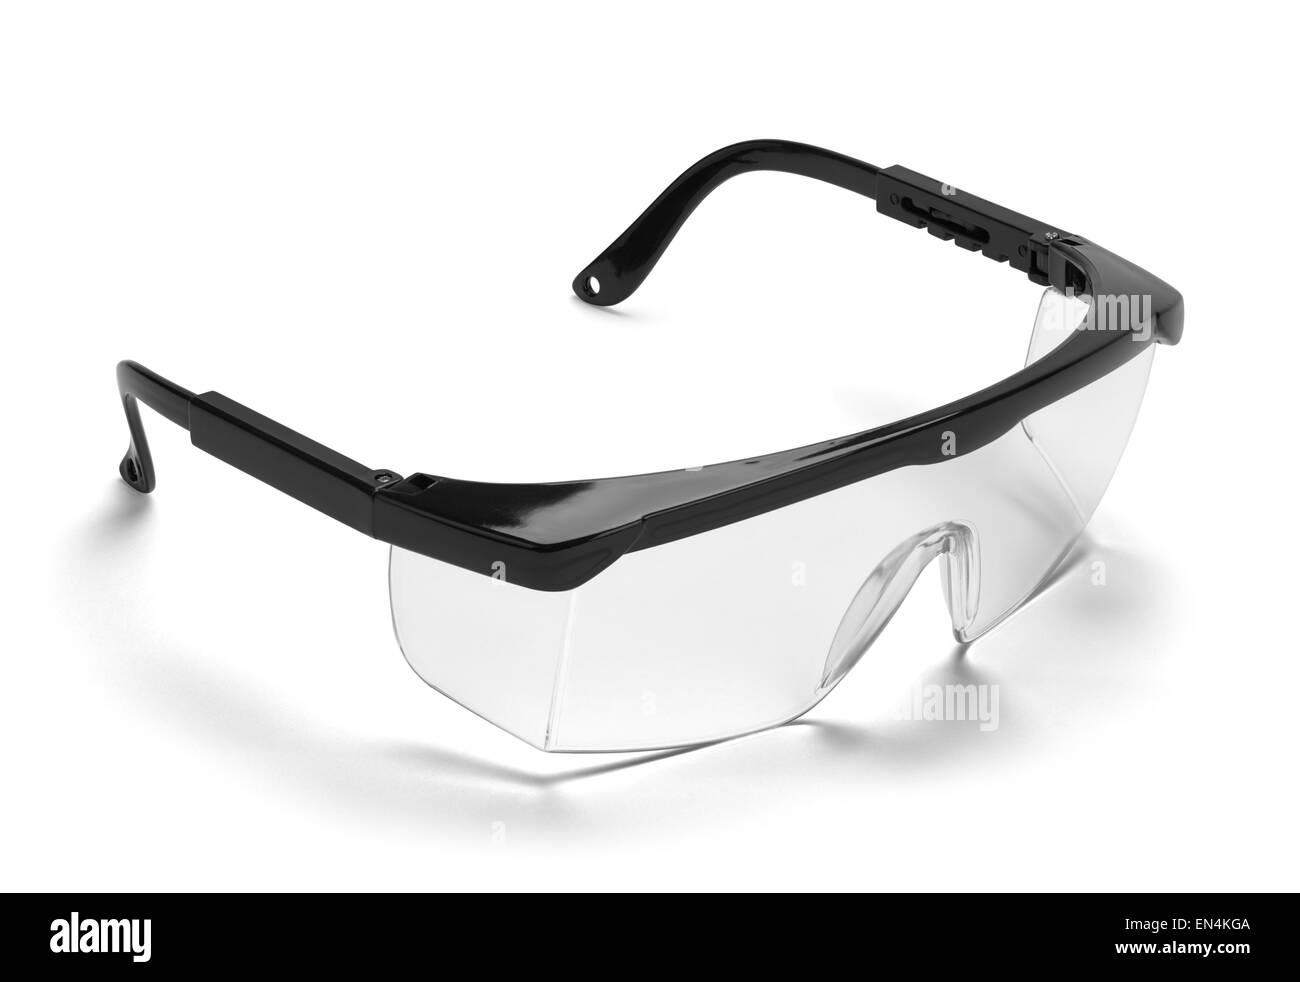 Black Plastic Protective Work Glasses Isolated on a White Background. - Stock Image